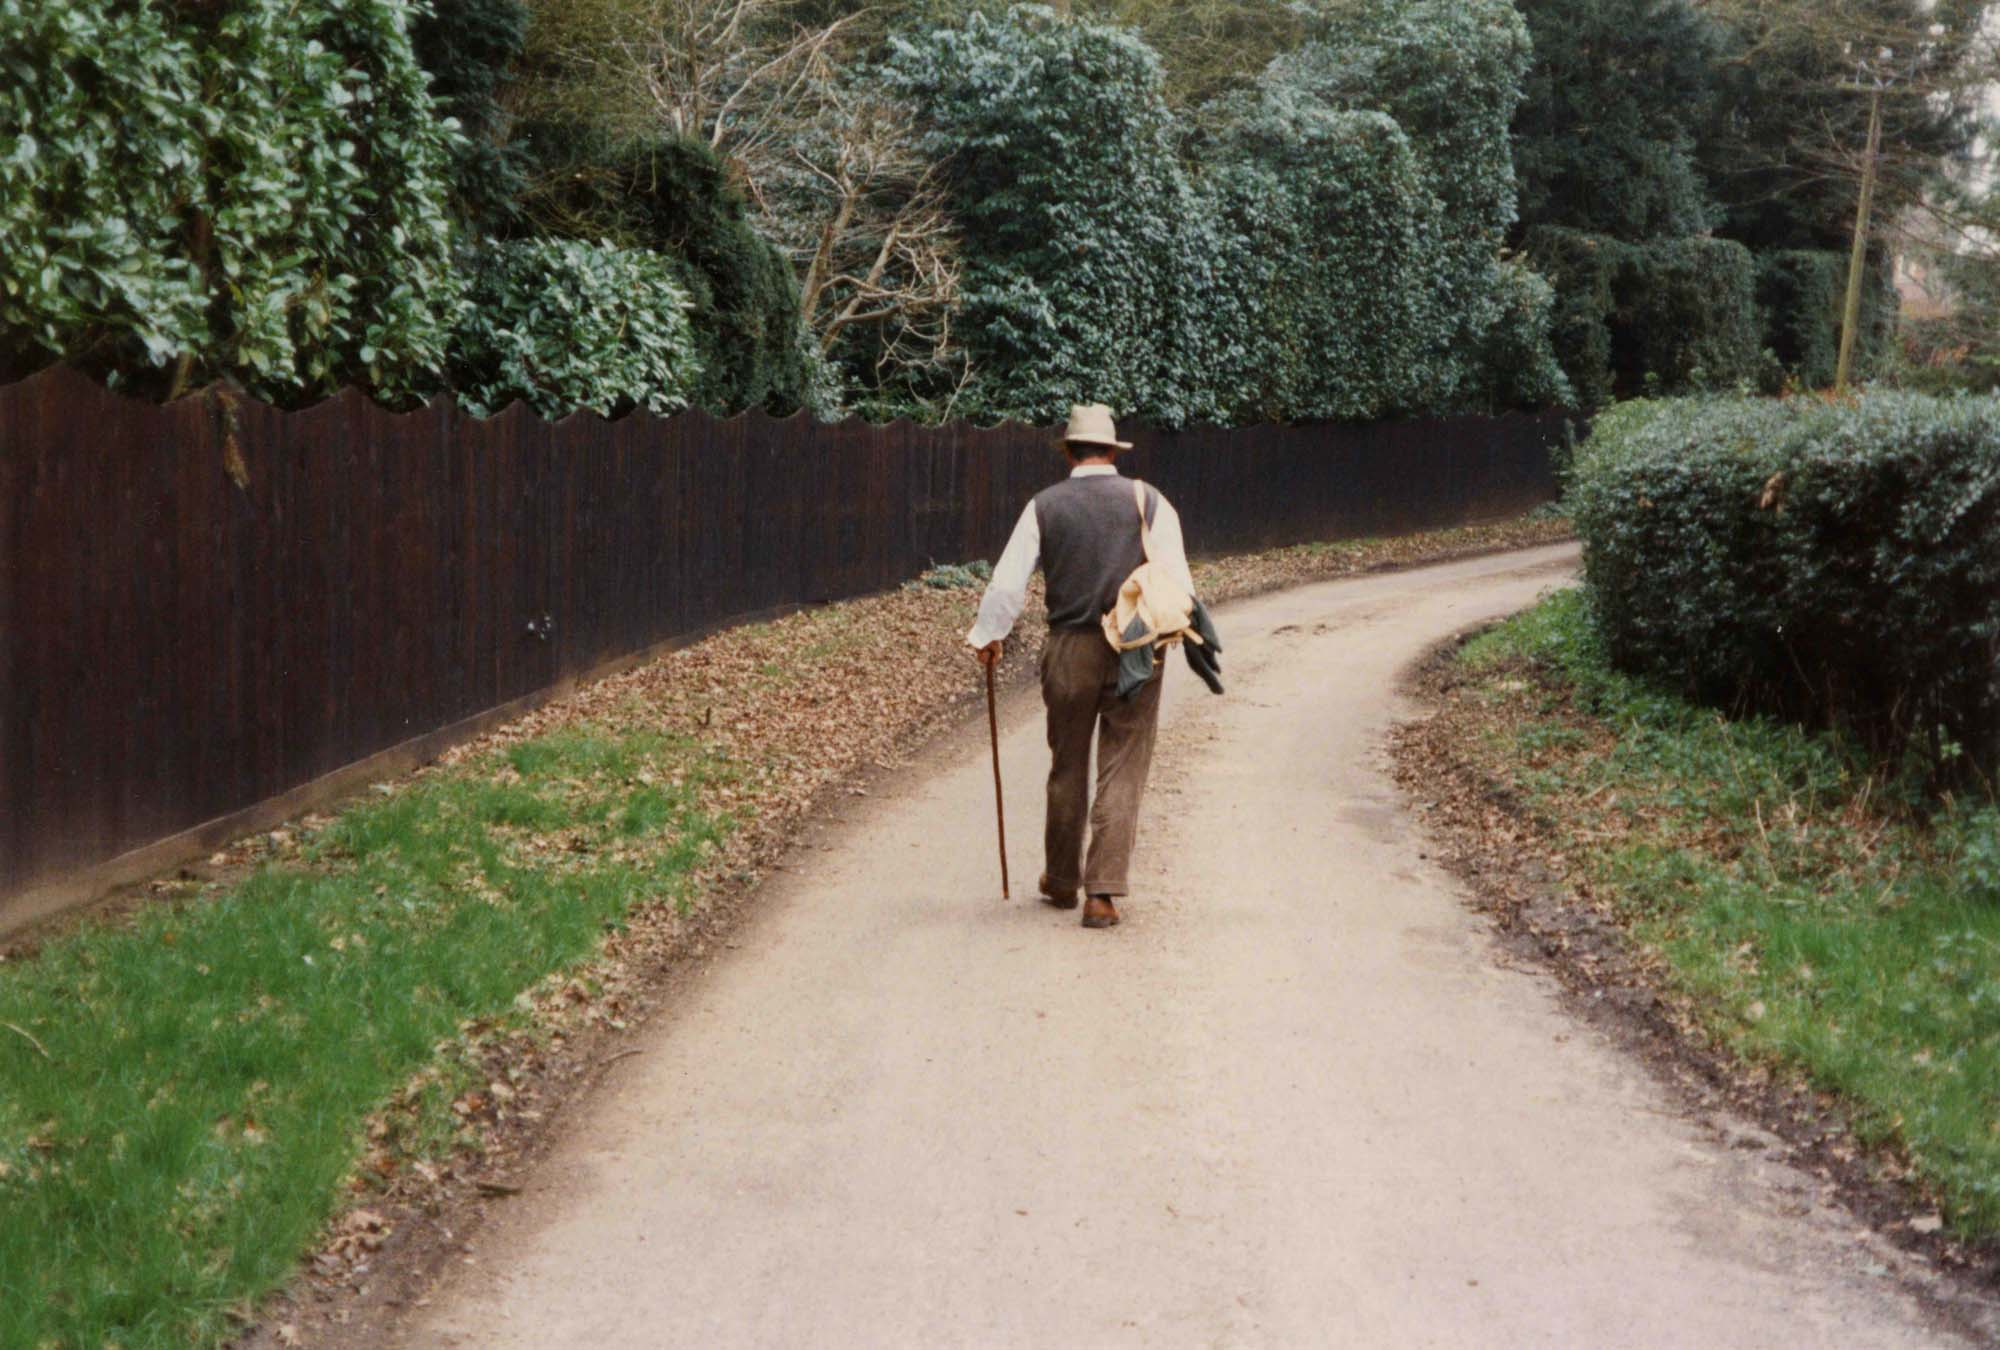 a photo of a man with a walking stick, fedora and cords walking down a path strewn with leaves